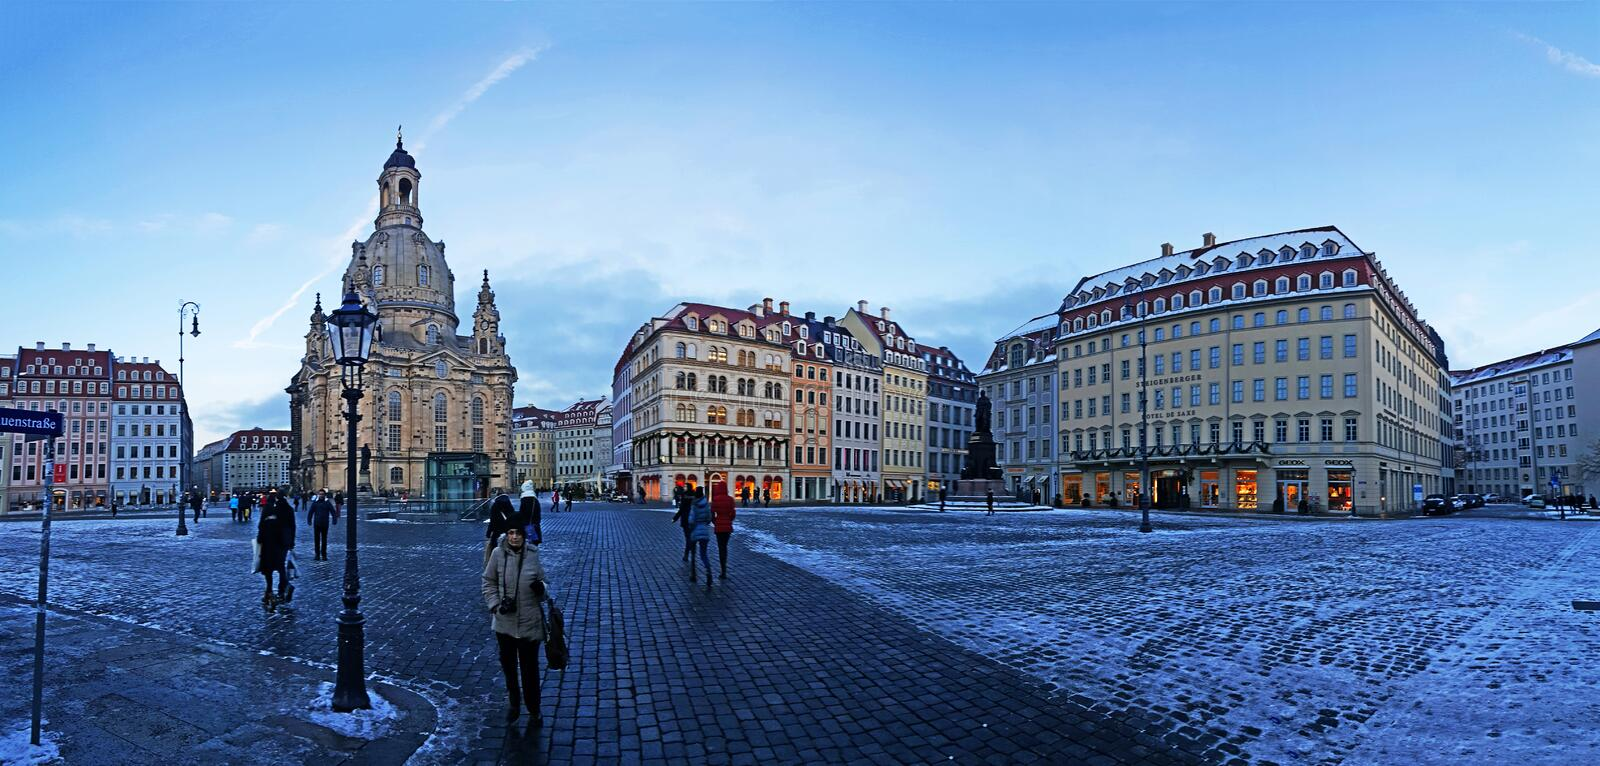 Frauenkirche cathedral with evening view of Dresden streets, buildings, churches and squares. Frauenkirche cathedral with evening view of Dresden streets royalty free stock photo